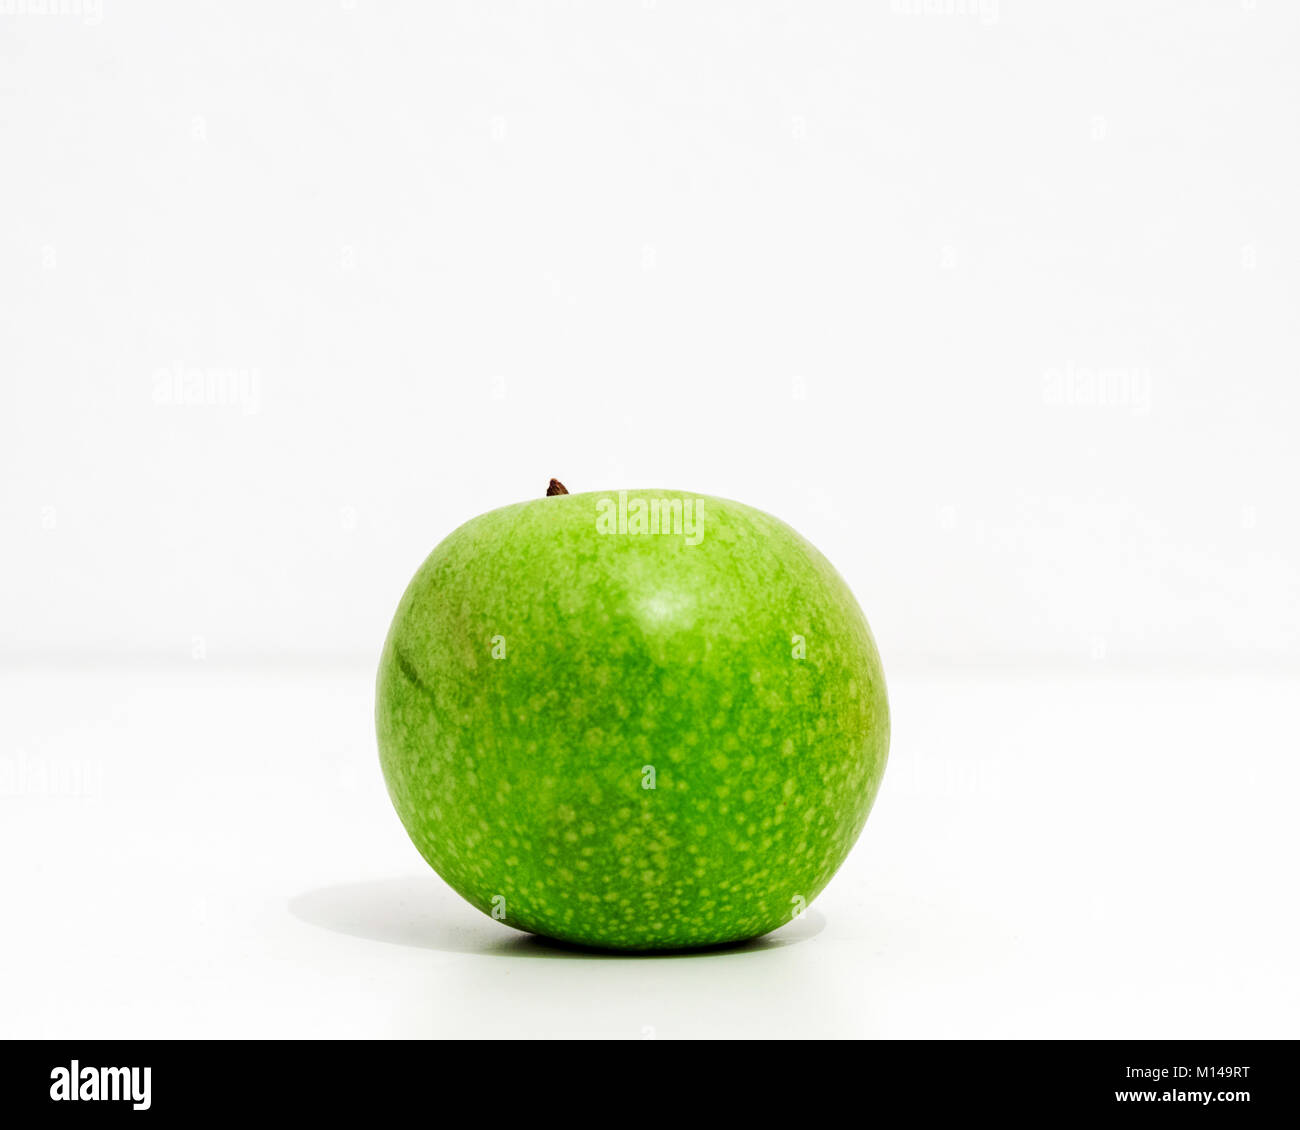 Granny Smith apple - Stock Image